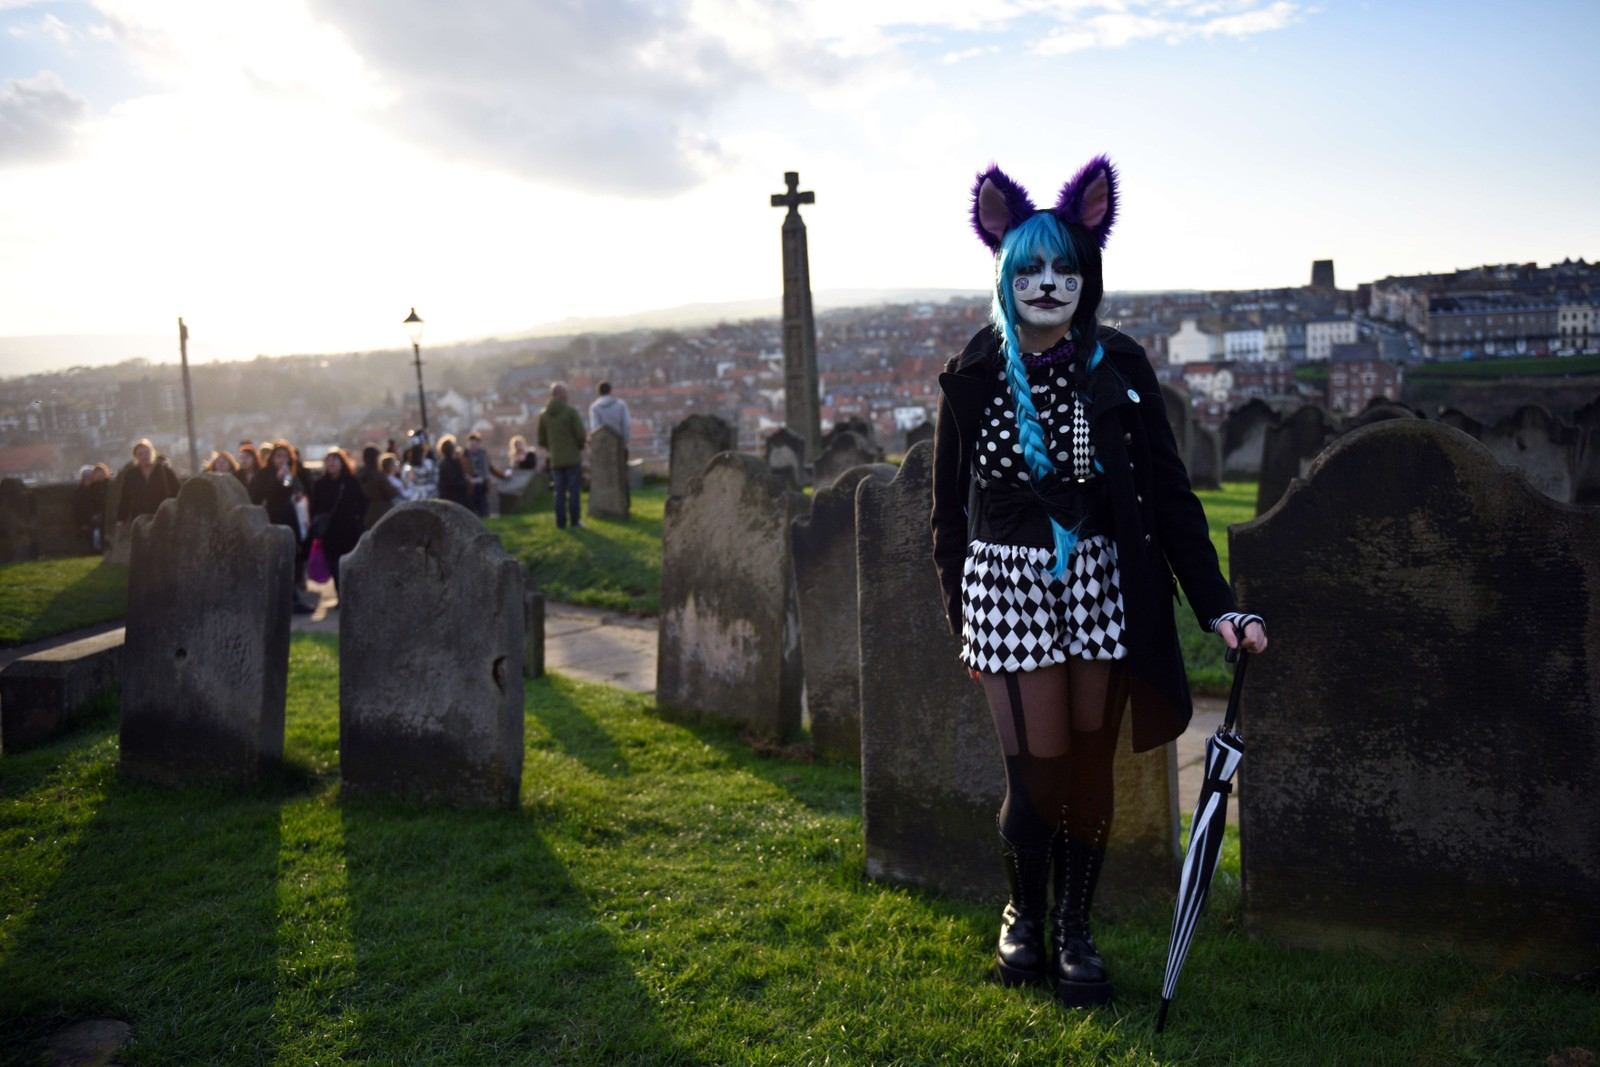 """A woman dressed in a costume is pictured during the biannual """"Whitby Goth Weekend"""" (WGW) festival in Whitby, Northern England, on November 2, 2014. The WGW festival brings thousands of goths and alternative lifestyle fans from the UK and around the world over a weekend of music, dancing and shopping."""